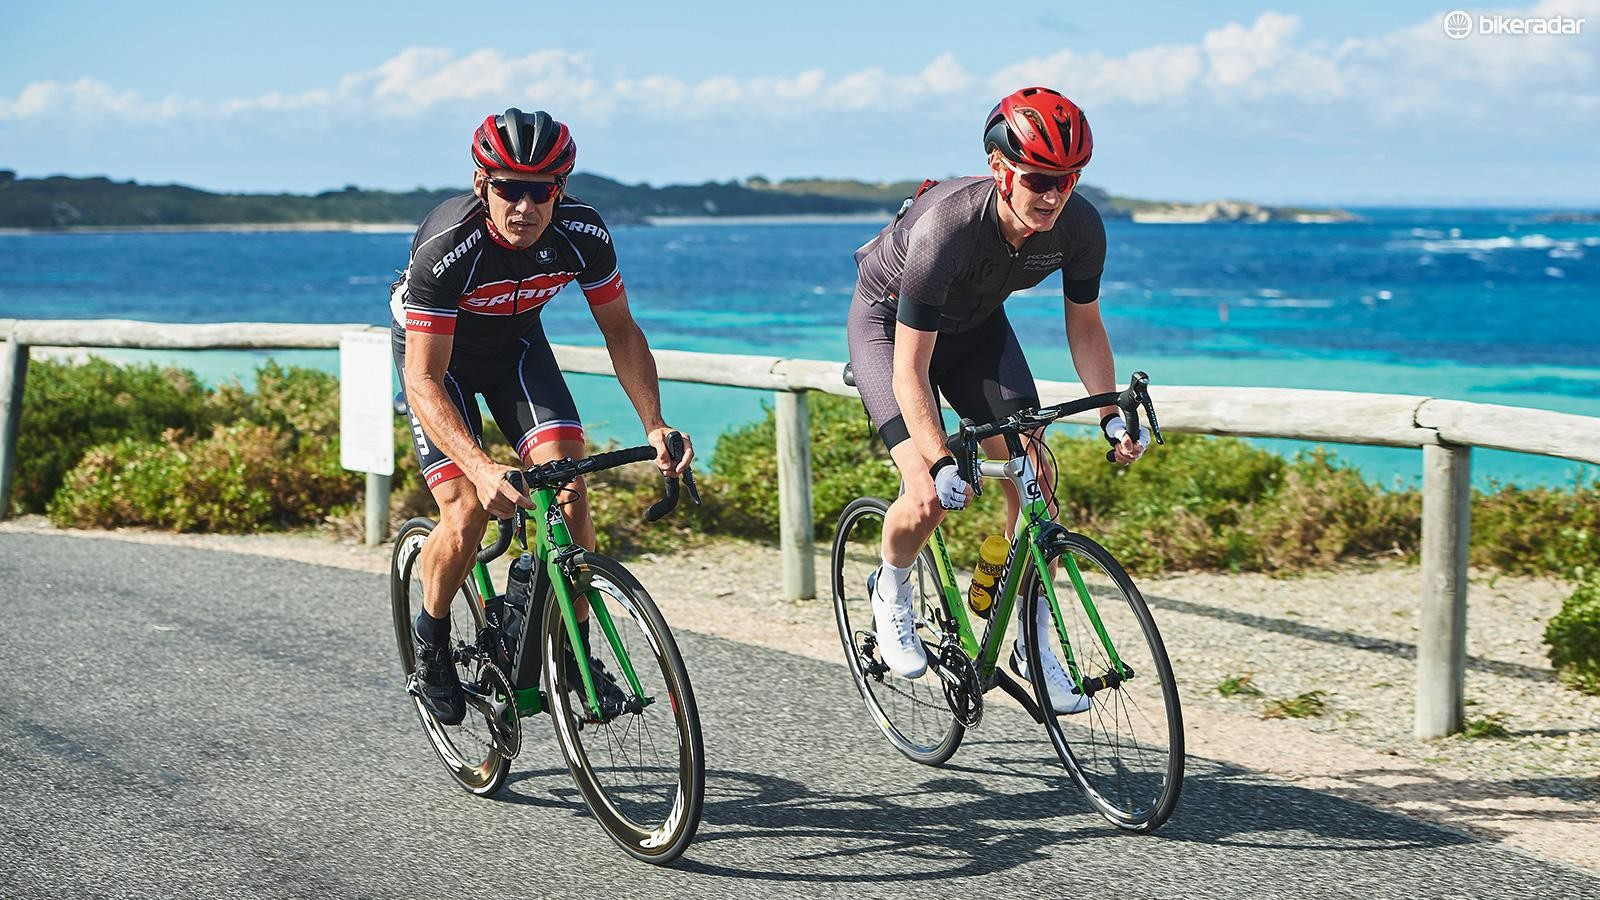 Former pro Robbie McEwen joined John for a spin